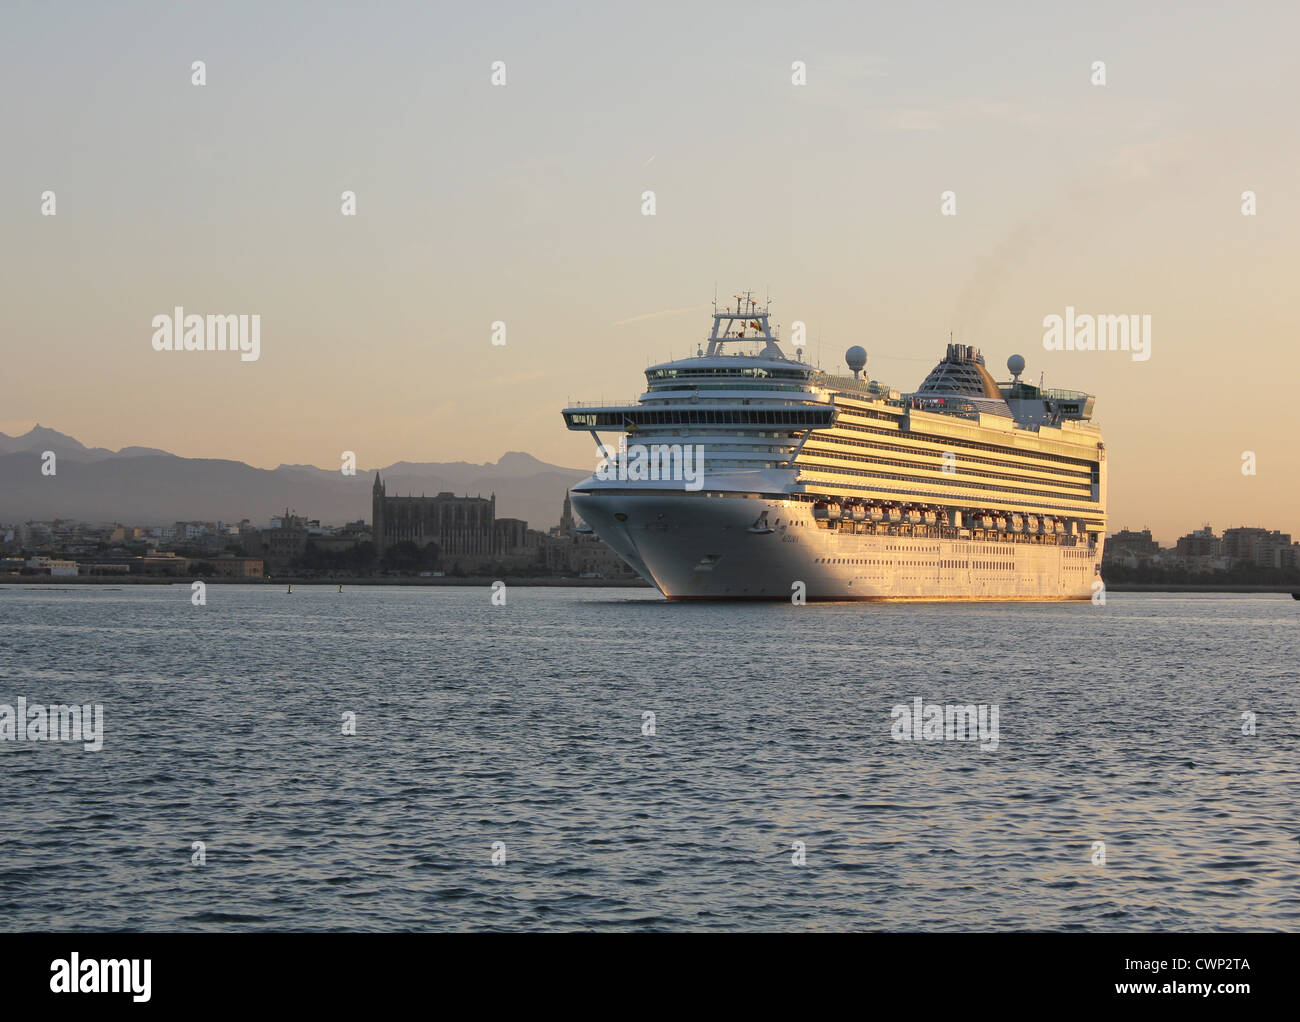 Cunard Line Cruise Ship 'Azura' arriving at early morning into the Port of Palma de Mallorca - with Palma - Stock Image